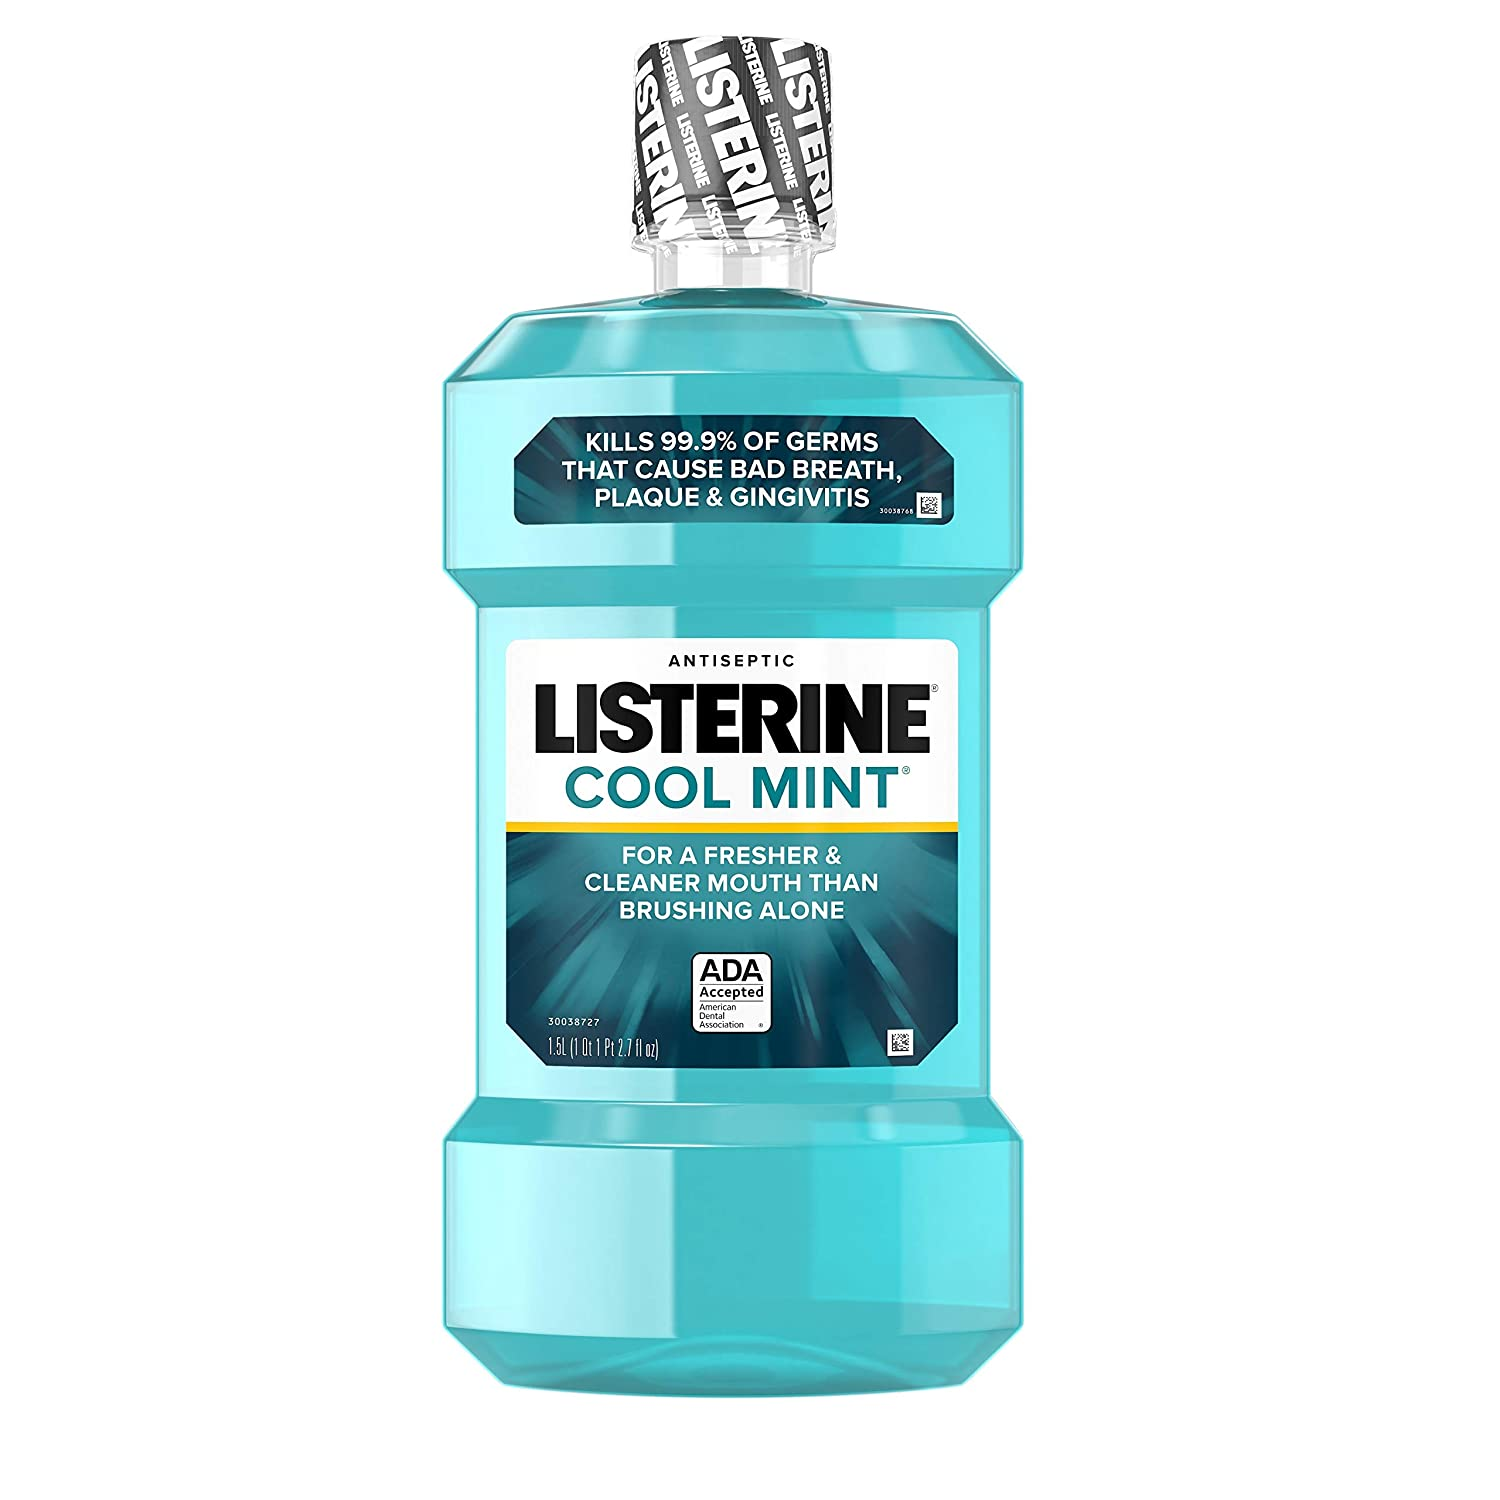 Listerine Cool Mint Antiseptic Mouthwash to Kill 99% of Germs that Cause Bad Breath, Plaque and Gingivitis, Cool Mint Flavor, 1.5 L